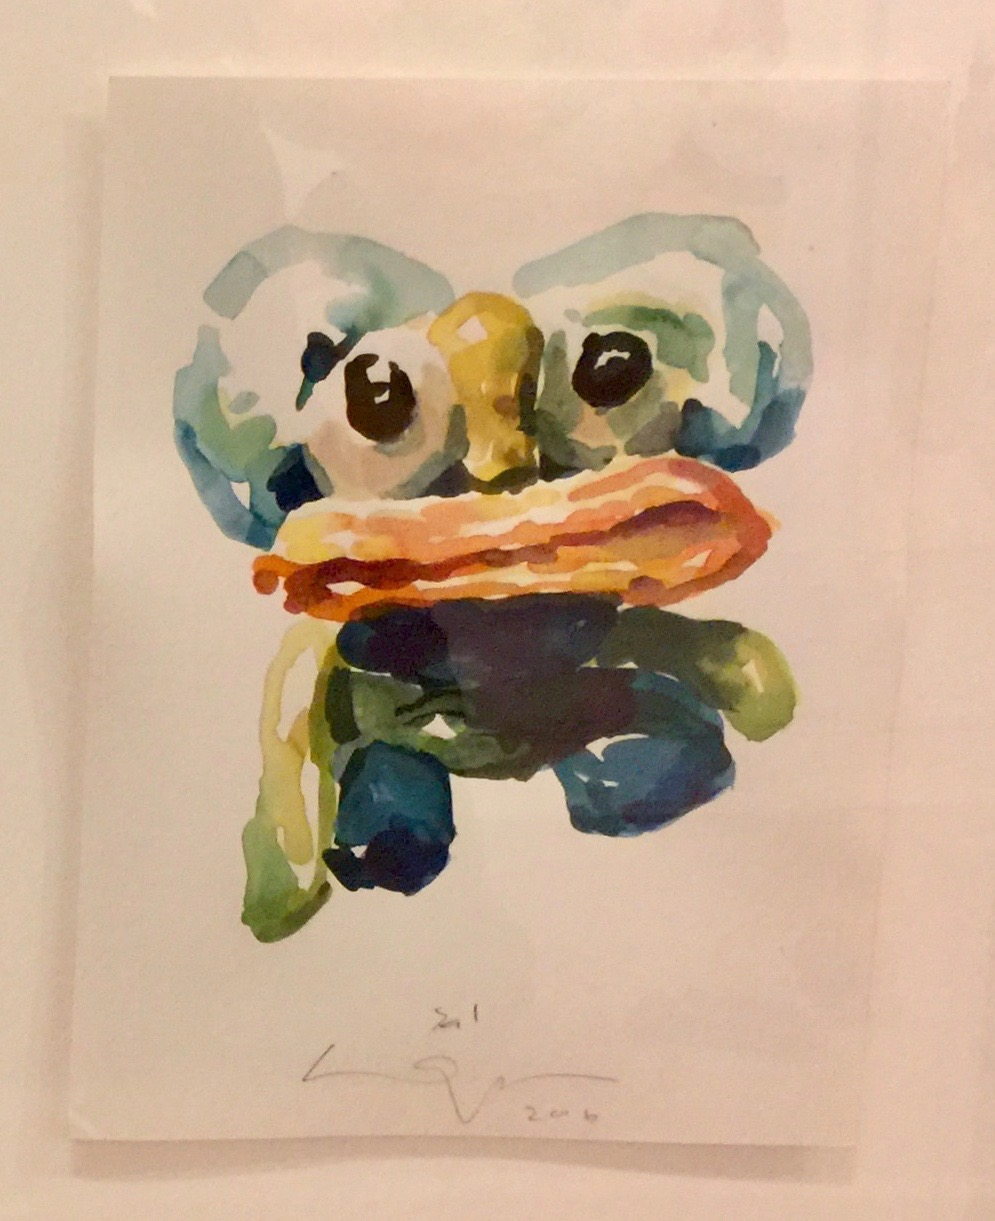 Peter Opheim   Sal   2016  Watercolor on paper  Signed, titled, and dated by the artist in pencil  Sheet: 12 x 9 inches  Framed: 18 x 15 inches